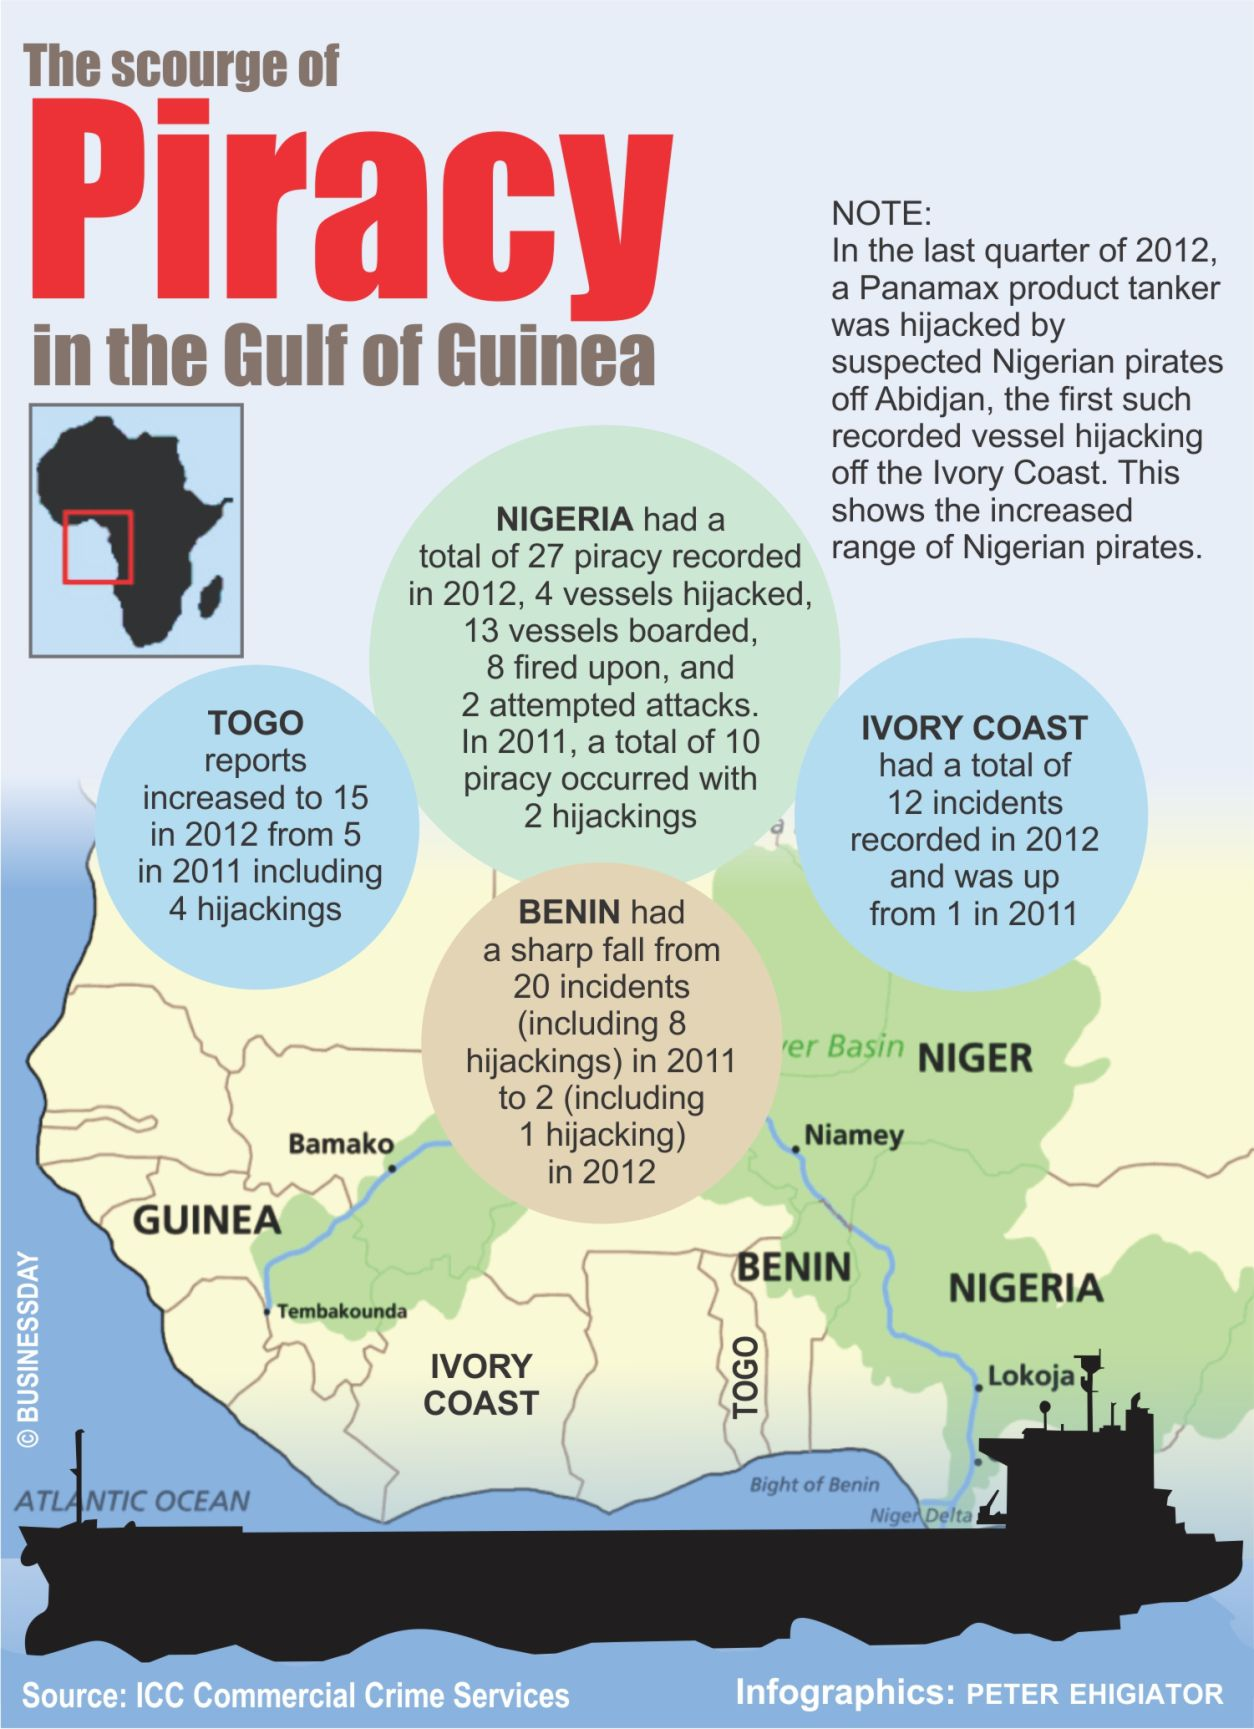 The Scourge of Piracy in the Gul of Guinea